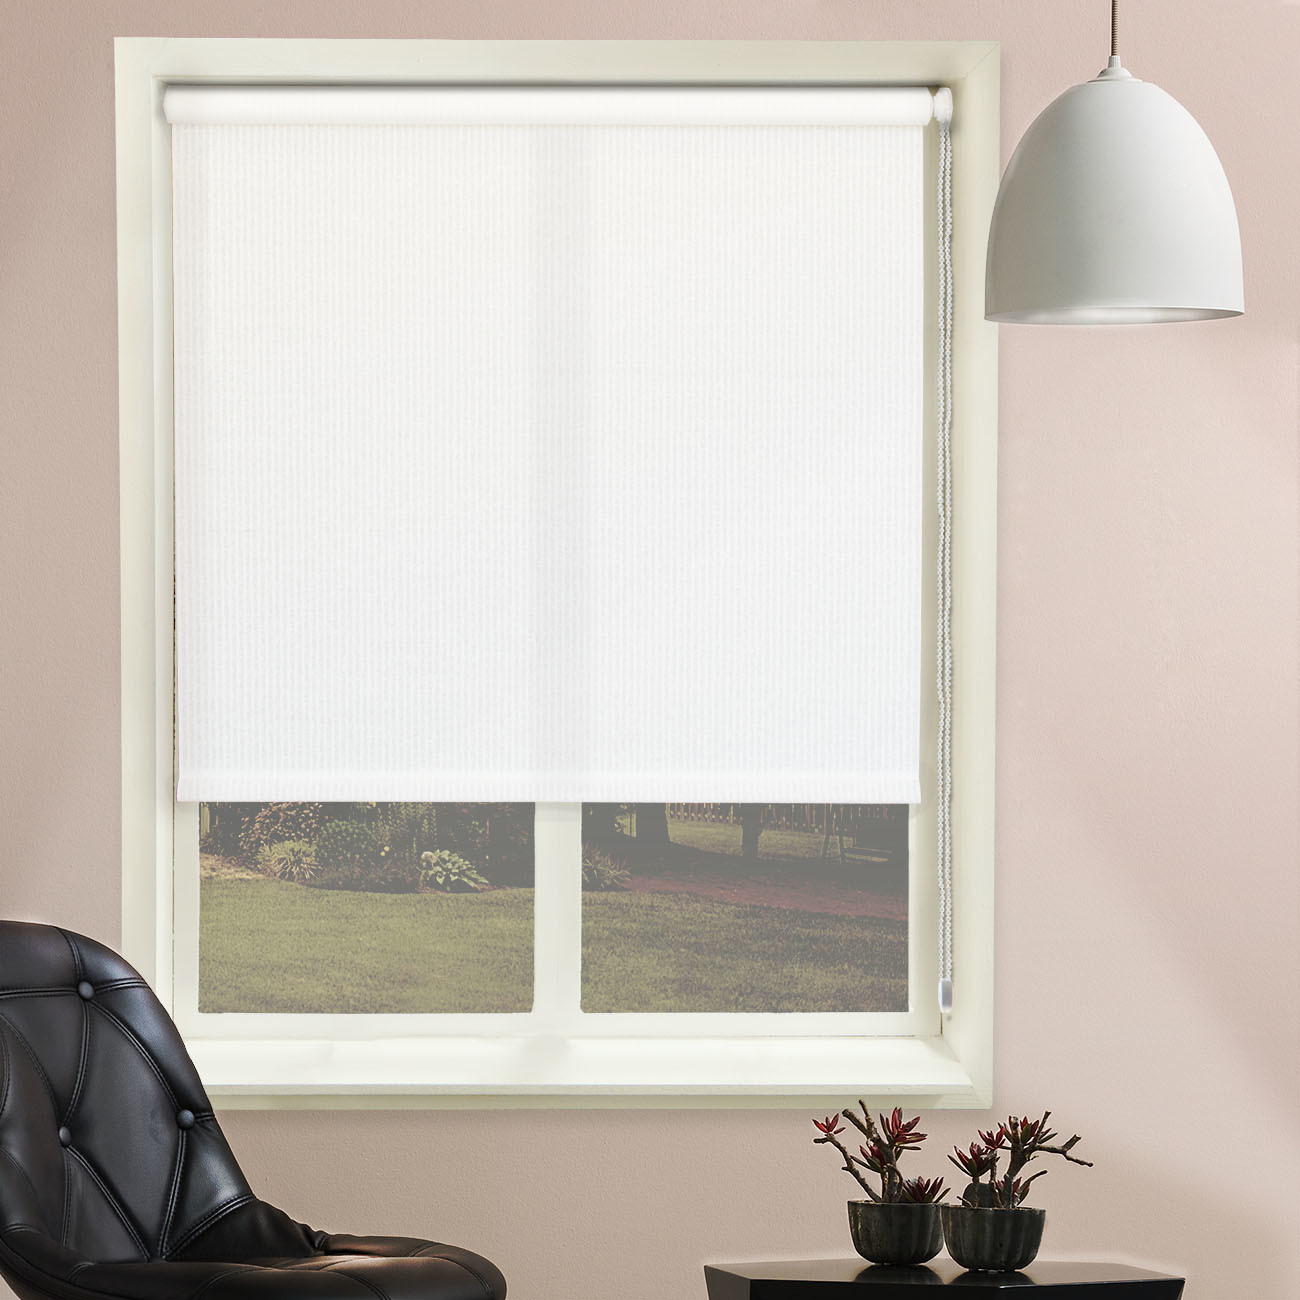 Excellent Menards Window Blinds For Best Window Blind Ideas Menards Window Blinds Menards Credit